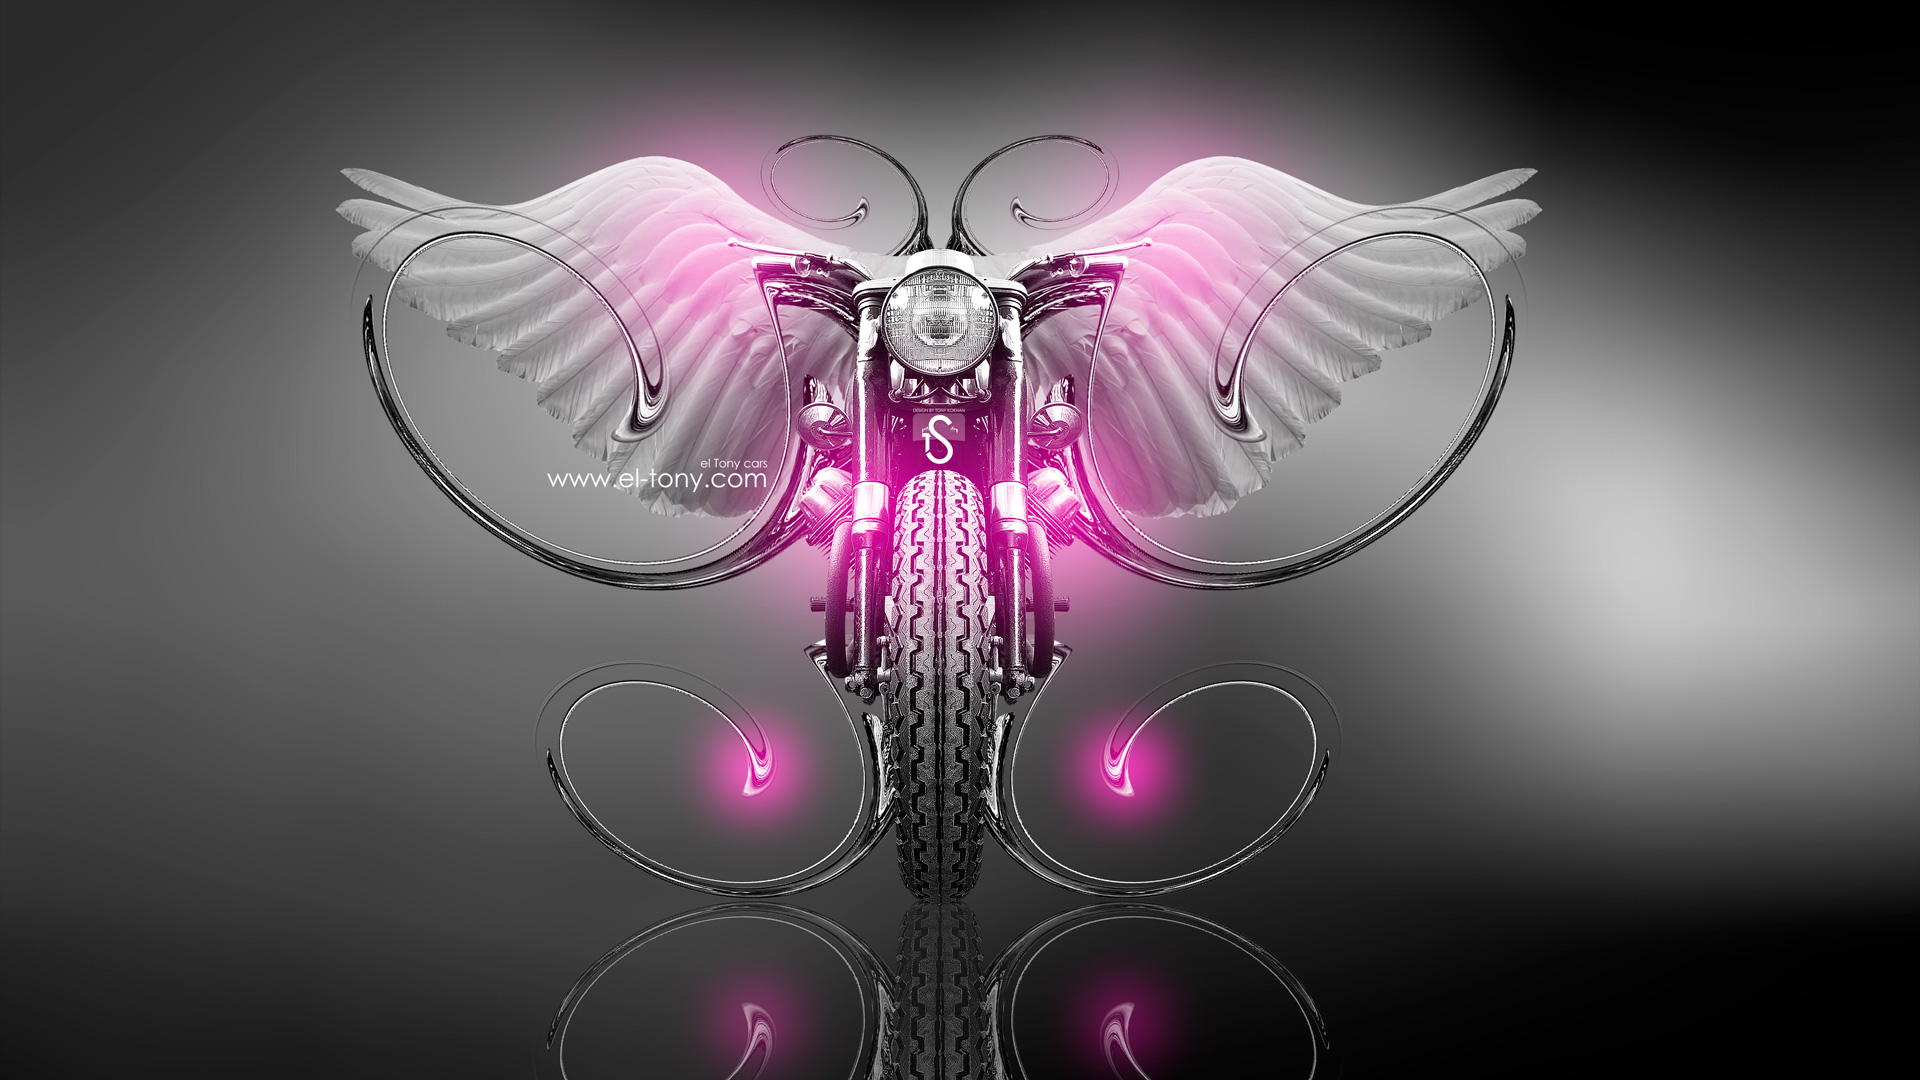 High Quality Superbe Moto Guzzi Fantasy Fly 2013 Pink Neon HD